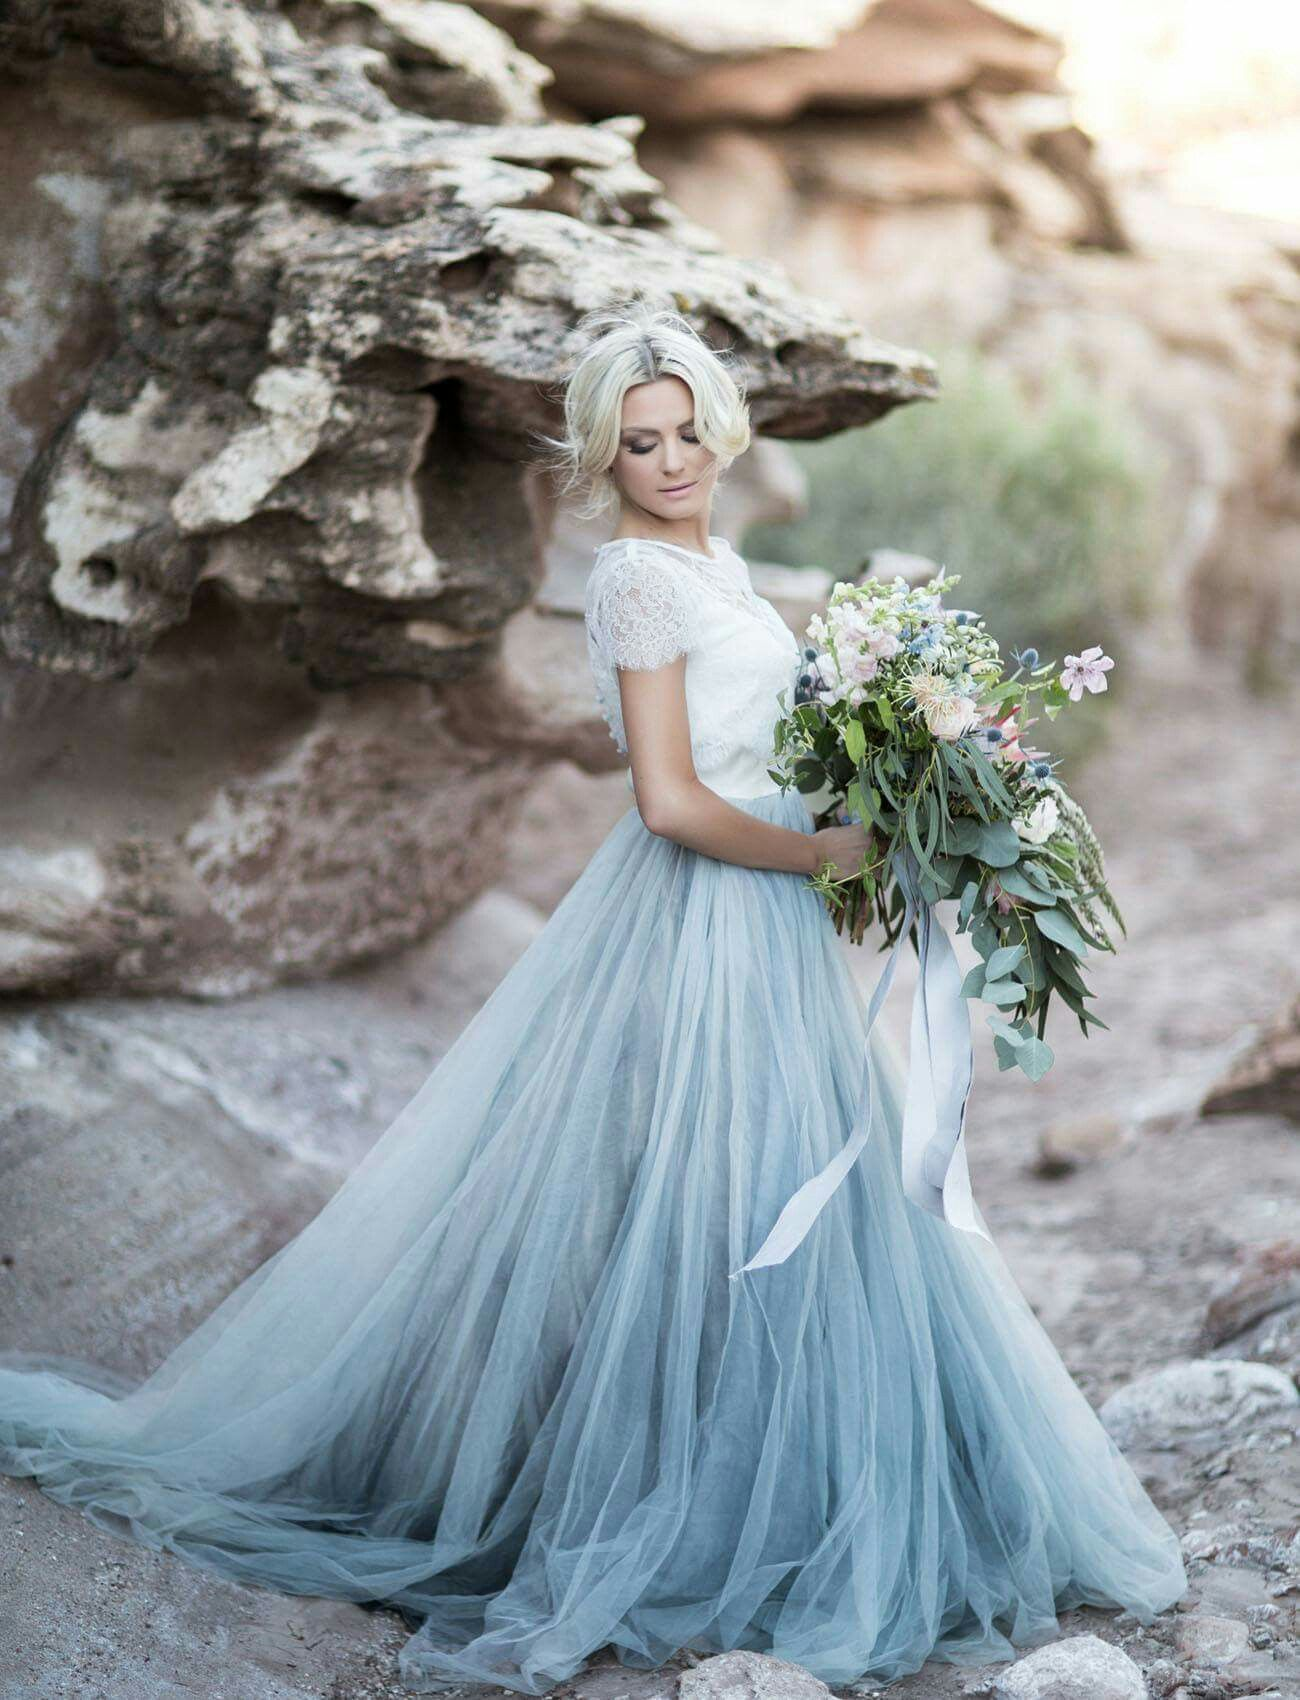 Blue tulle wedding gown! | Weddings | Pinterest | Tulle wedding gown ...